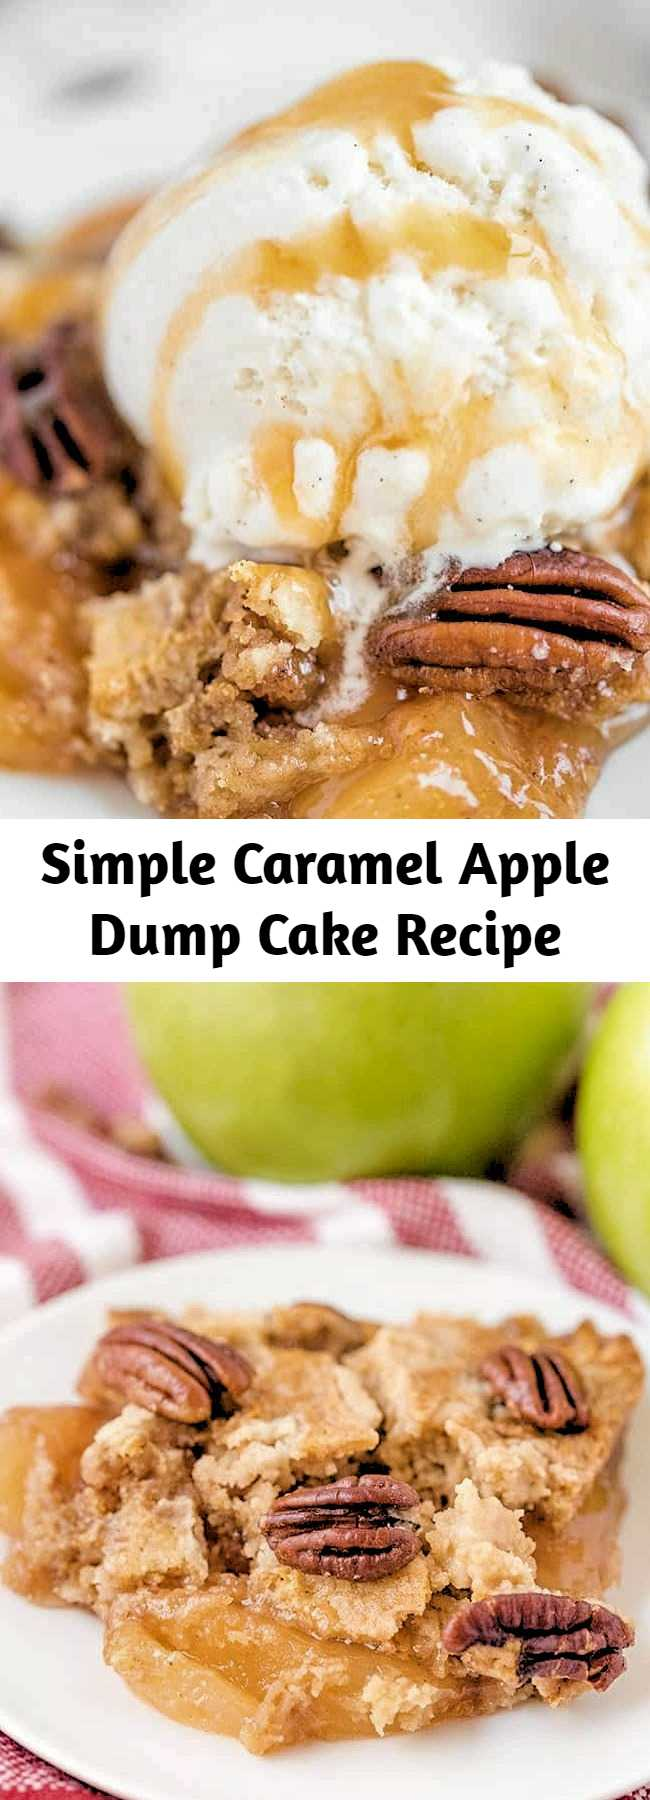 Simple Caramel Apple Dump Cake Recipe - A simple recipe for Caramel Apple Dump cake made with butter pecan cake mix and apple pie filling! A tender and moist spiced cake with tender apples throughout topped with nuts and a caramel drizzle that is the perfect amount of sweetness. Add a scoop of ice cream or dollop of whipped cream and you have a straightforward dessert is crowd worthy. #dumpcake #caramel #apples